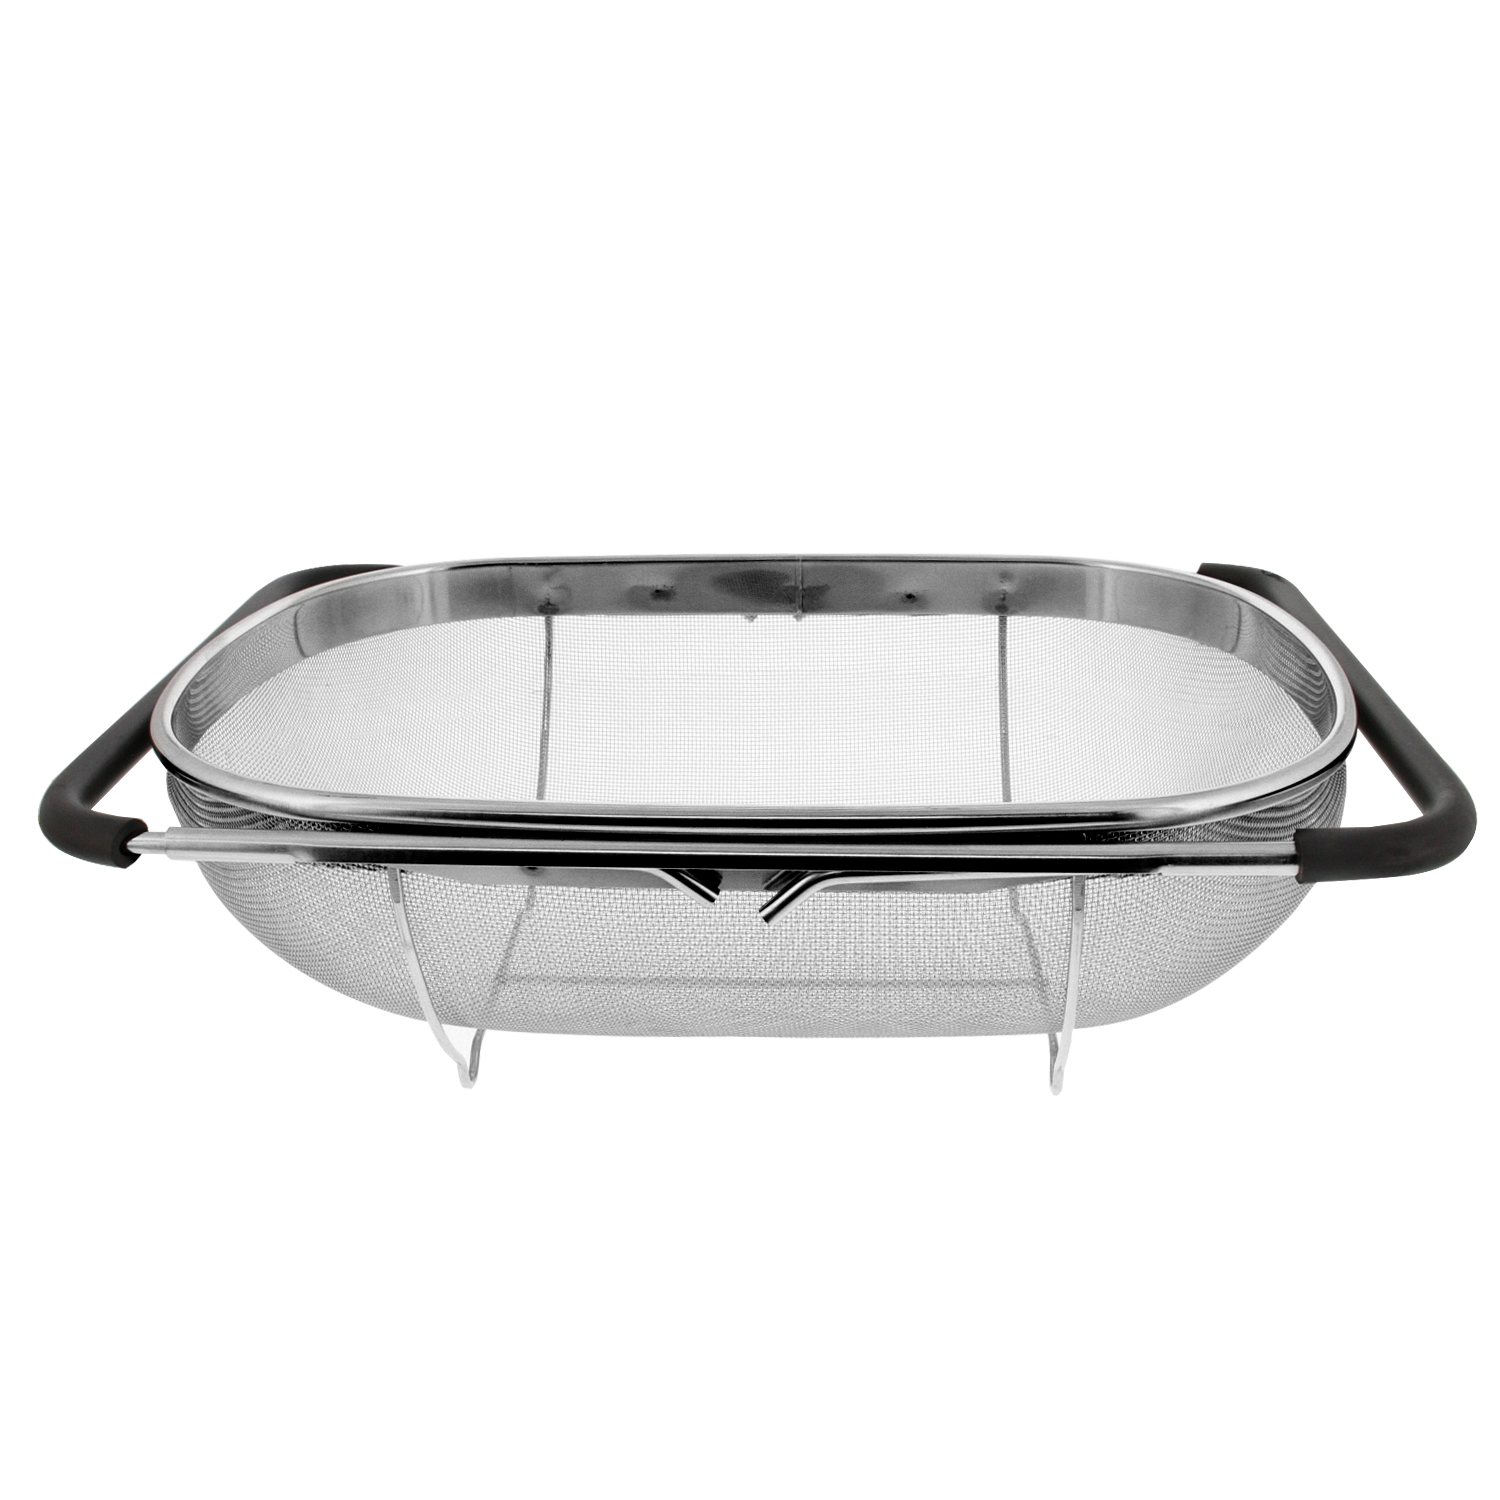 U.S. Kitchen Supply Over the Sink Deep Well Oval Stainless Steel Colander Fine Mesh w/ Extendable Handle